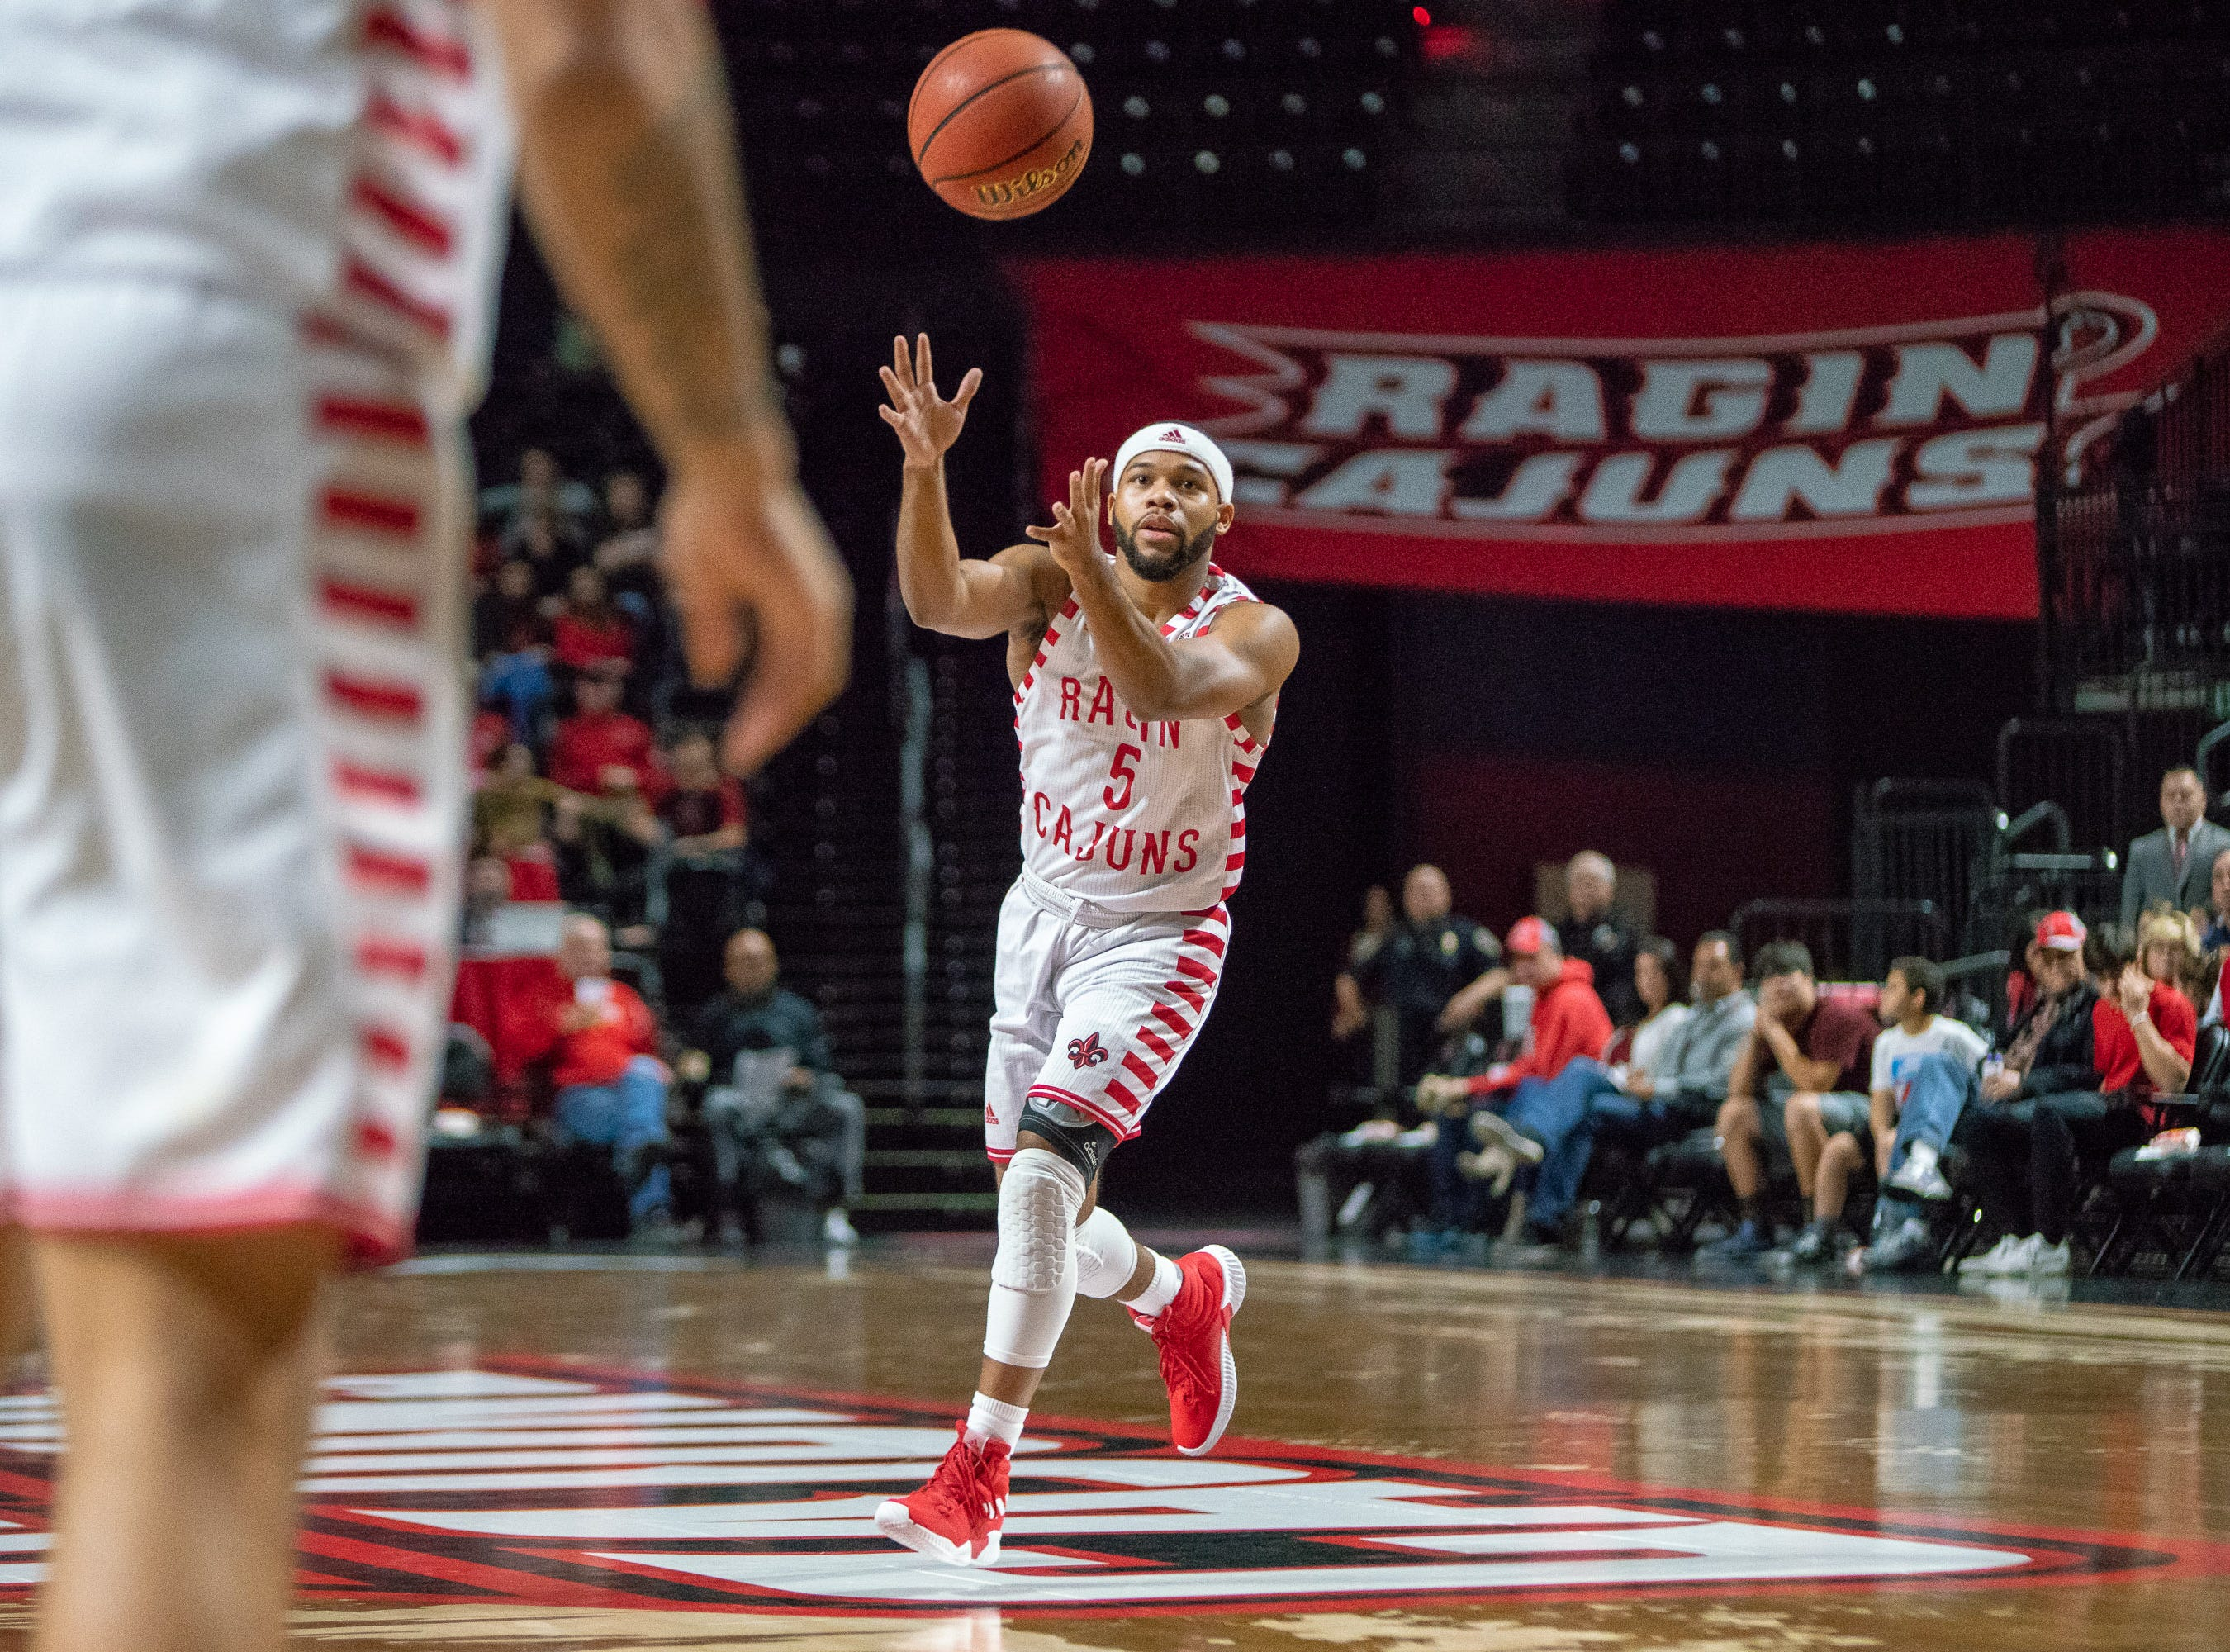 UL's Trajan Wesley catches a pass from a teammate as the Ragin' Cajuns take on the Little Rock Trojans at the Cajundome on January 5, 2019.